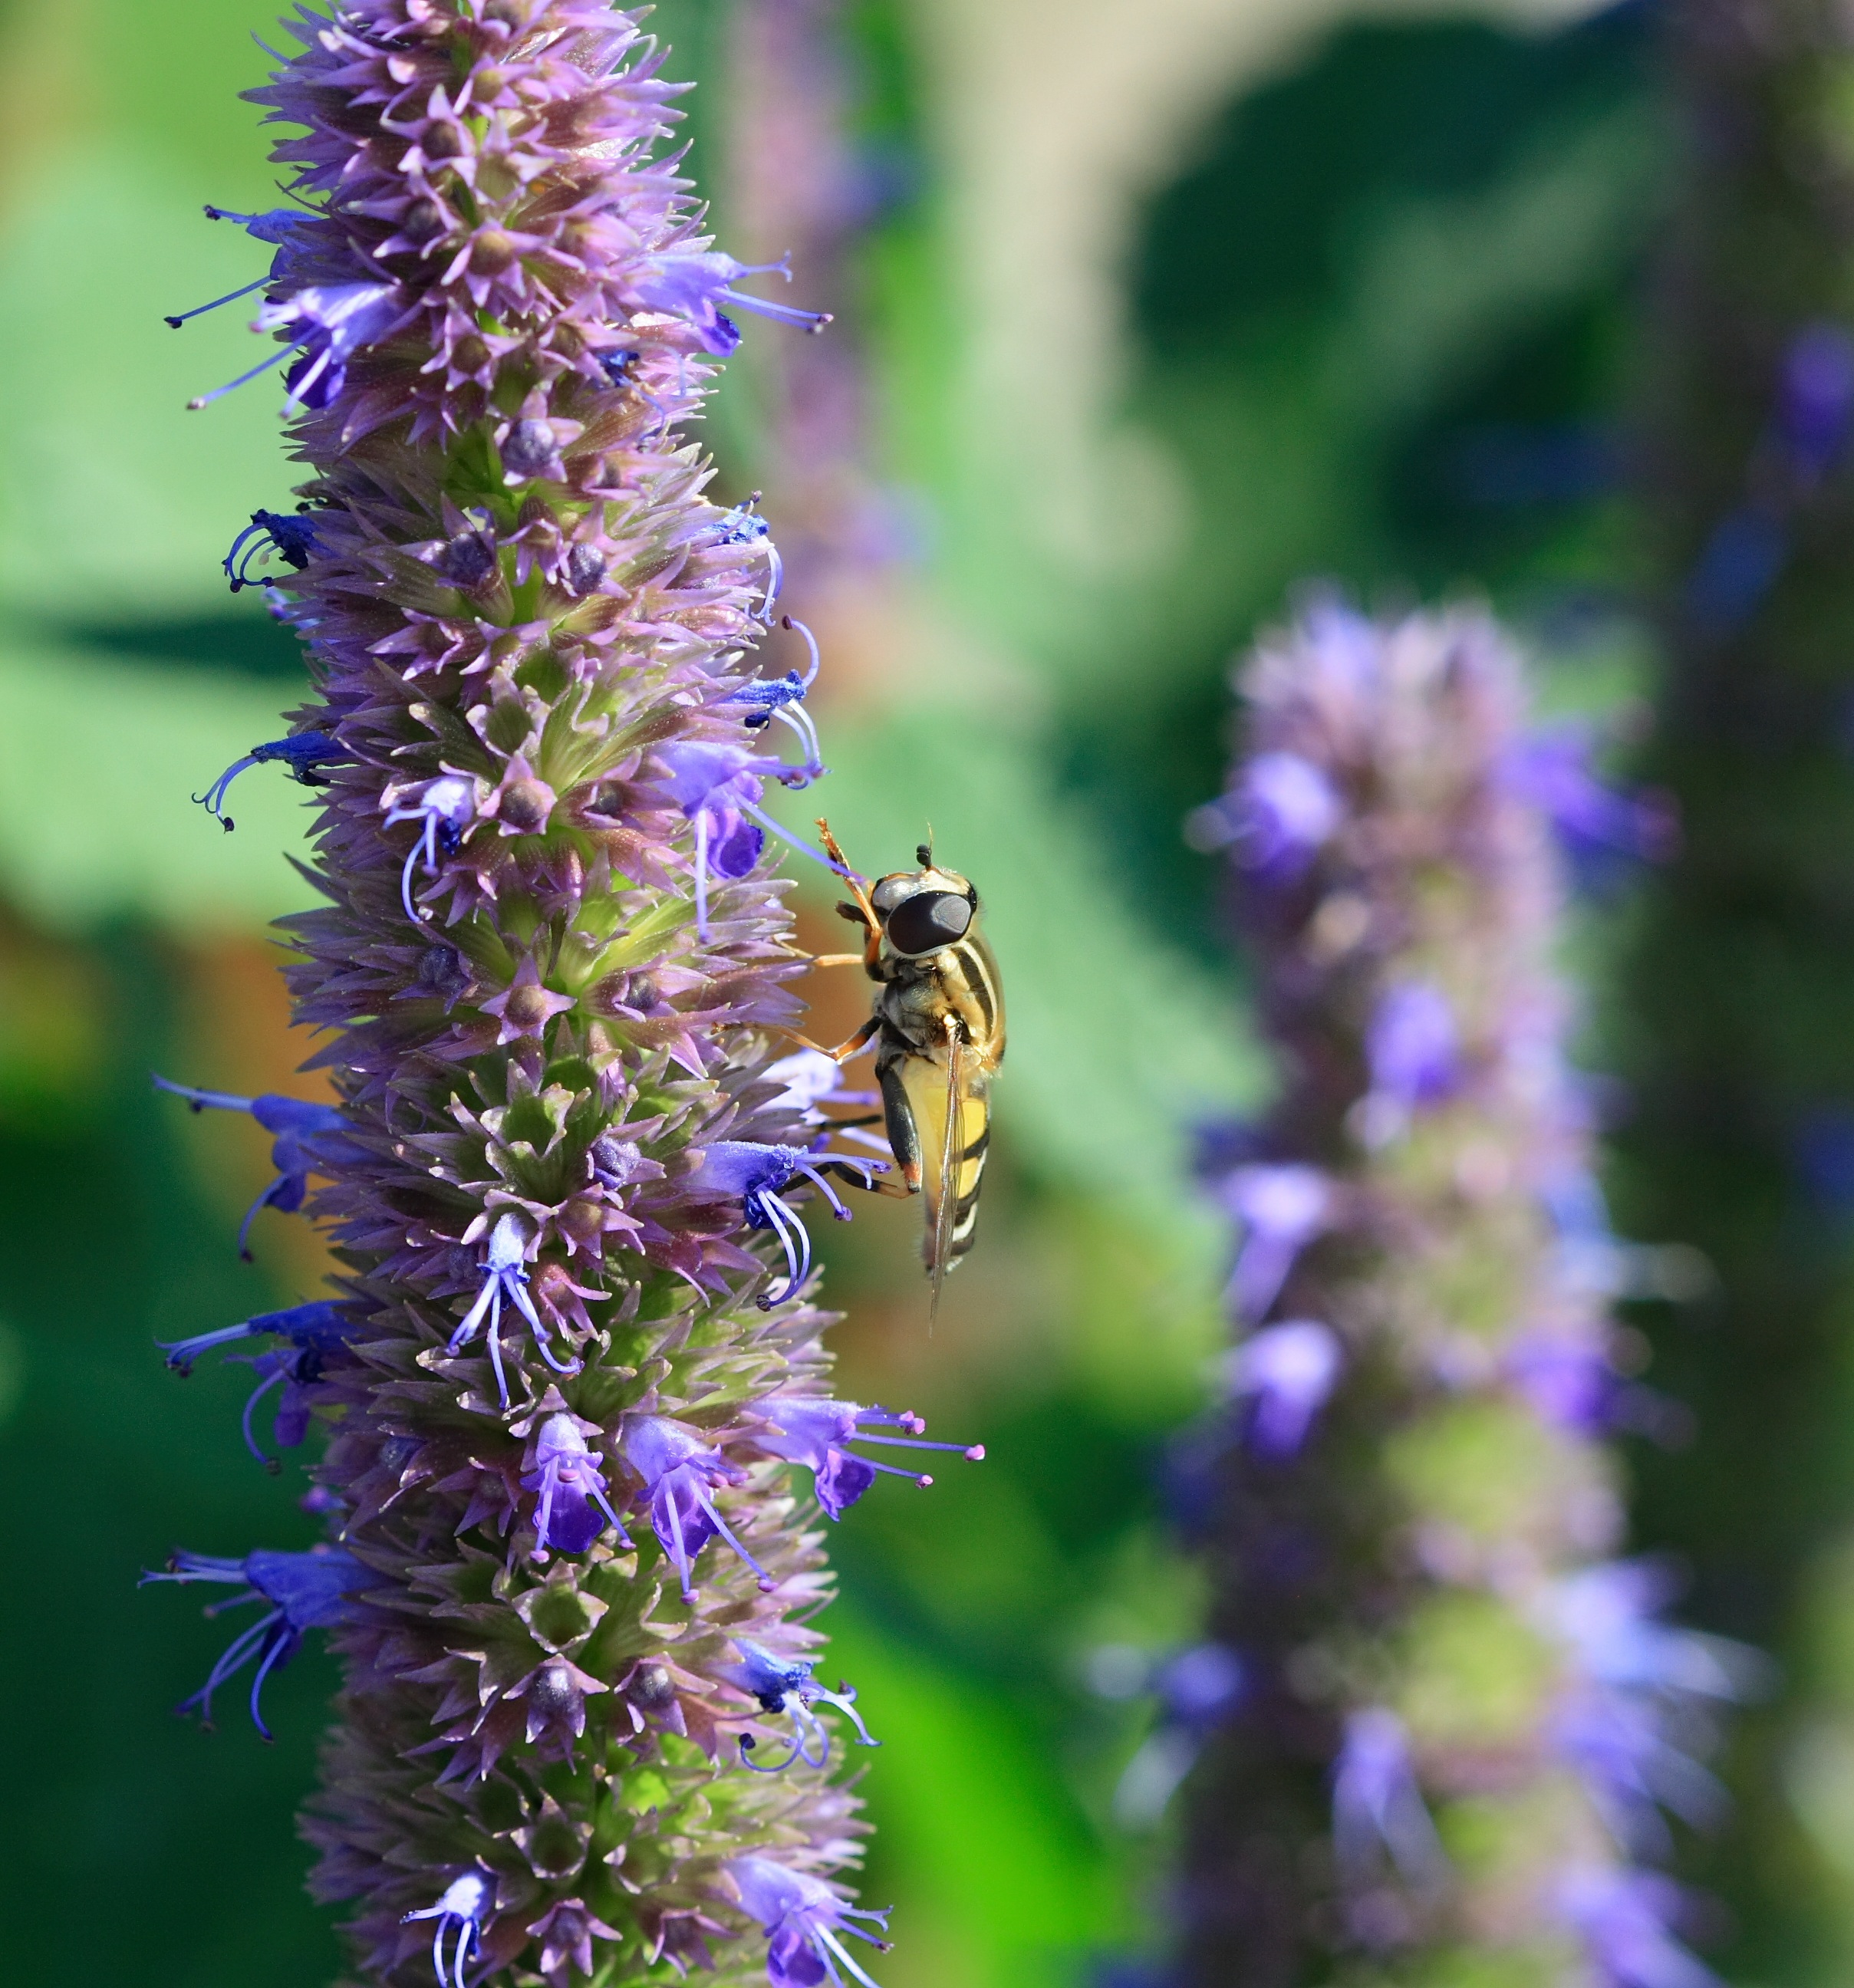 Anise hyssop is a member of the genus Agastache.